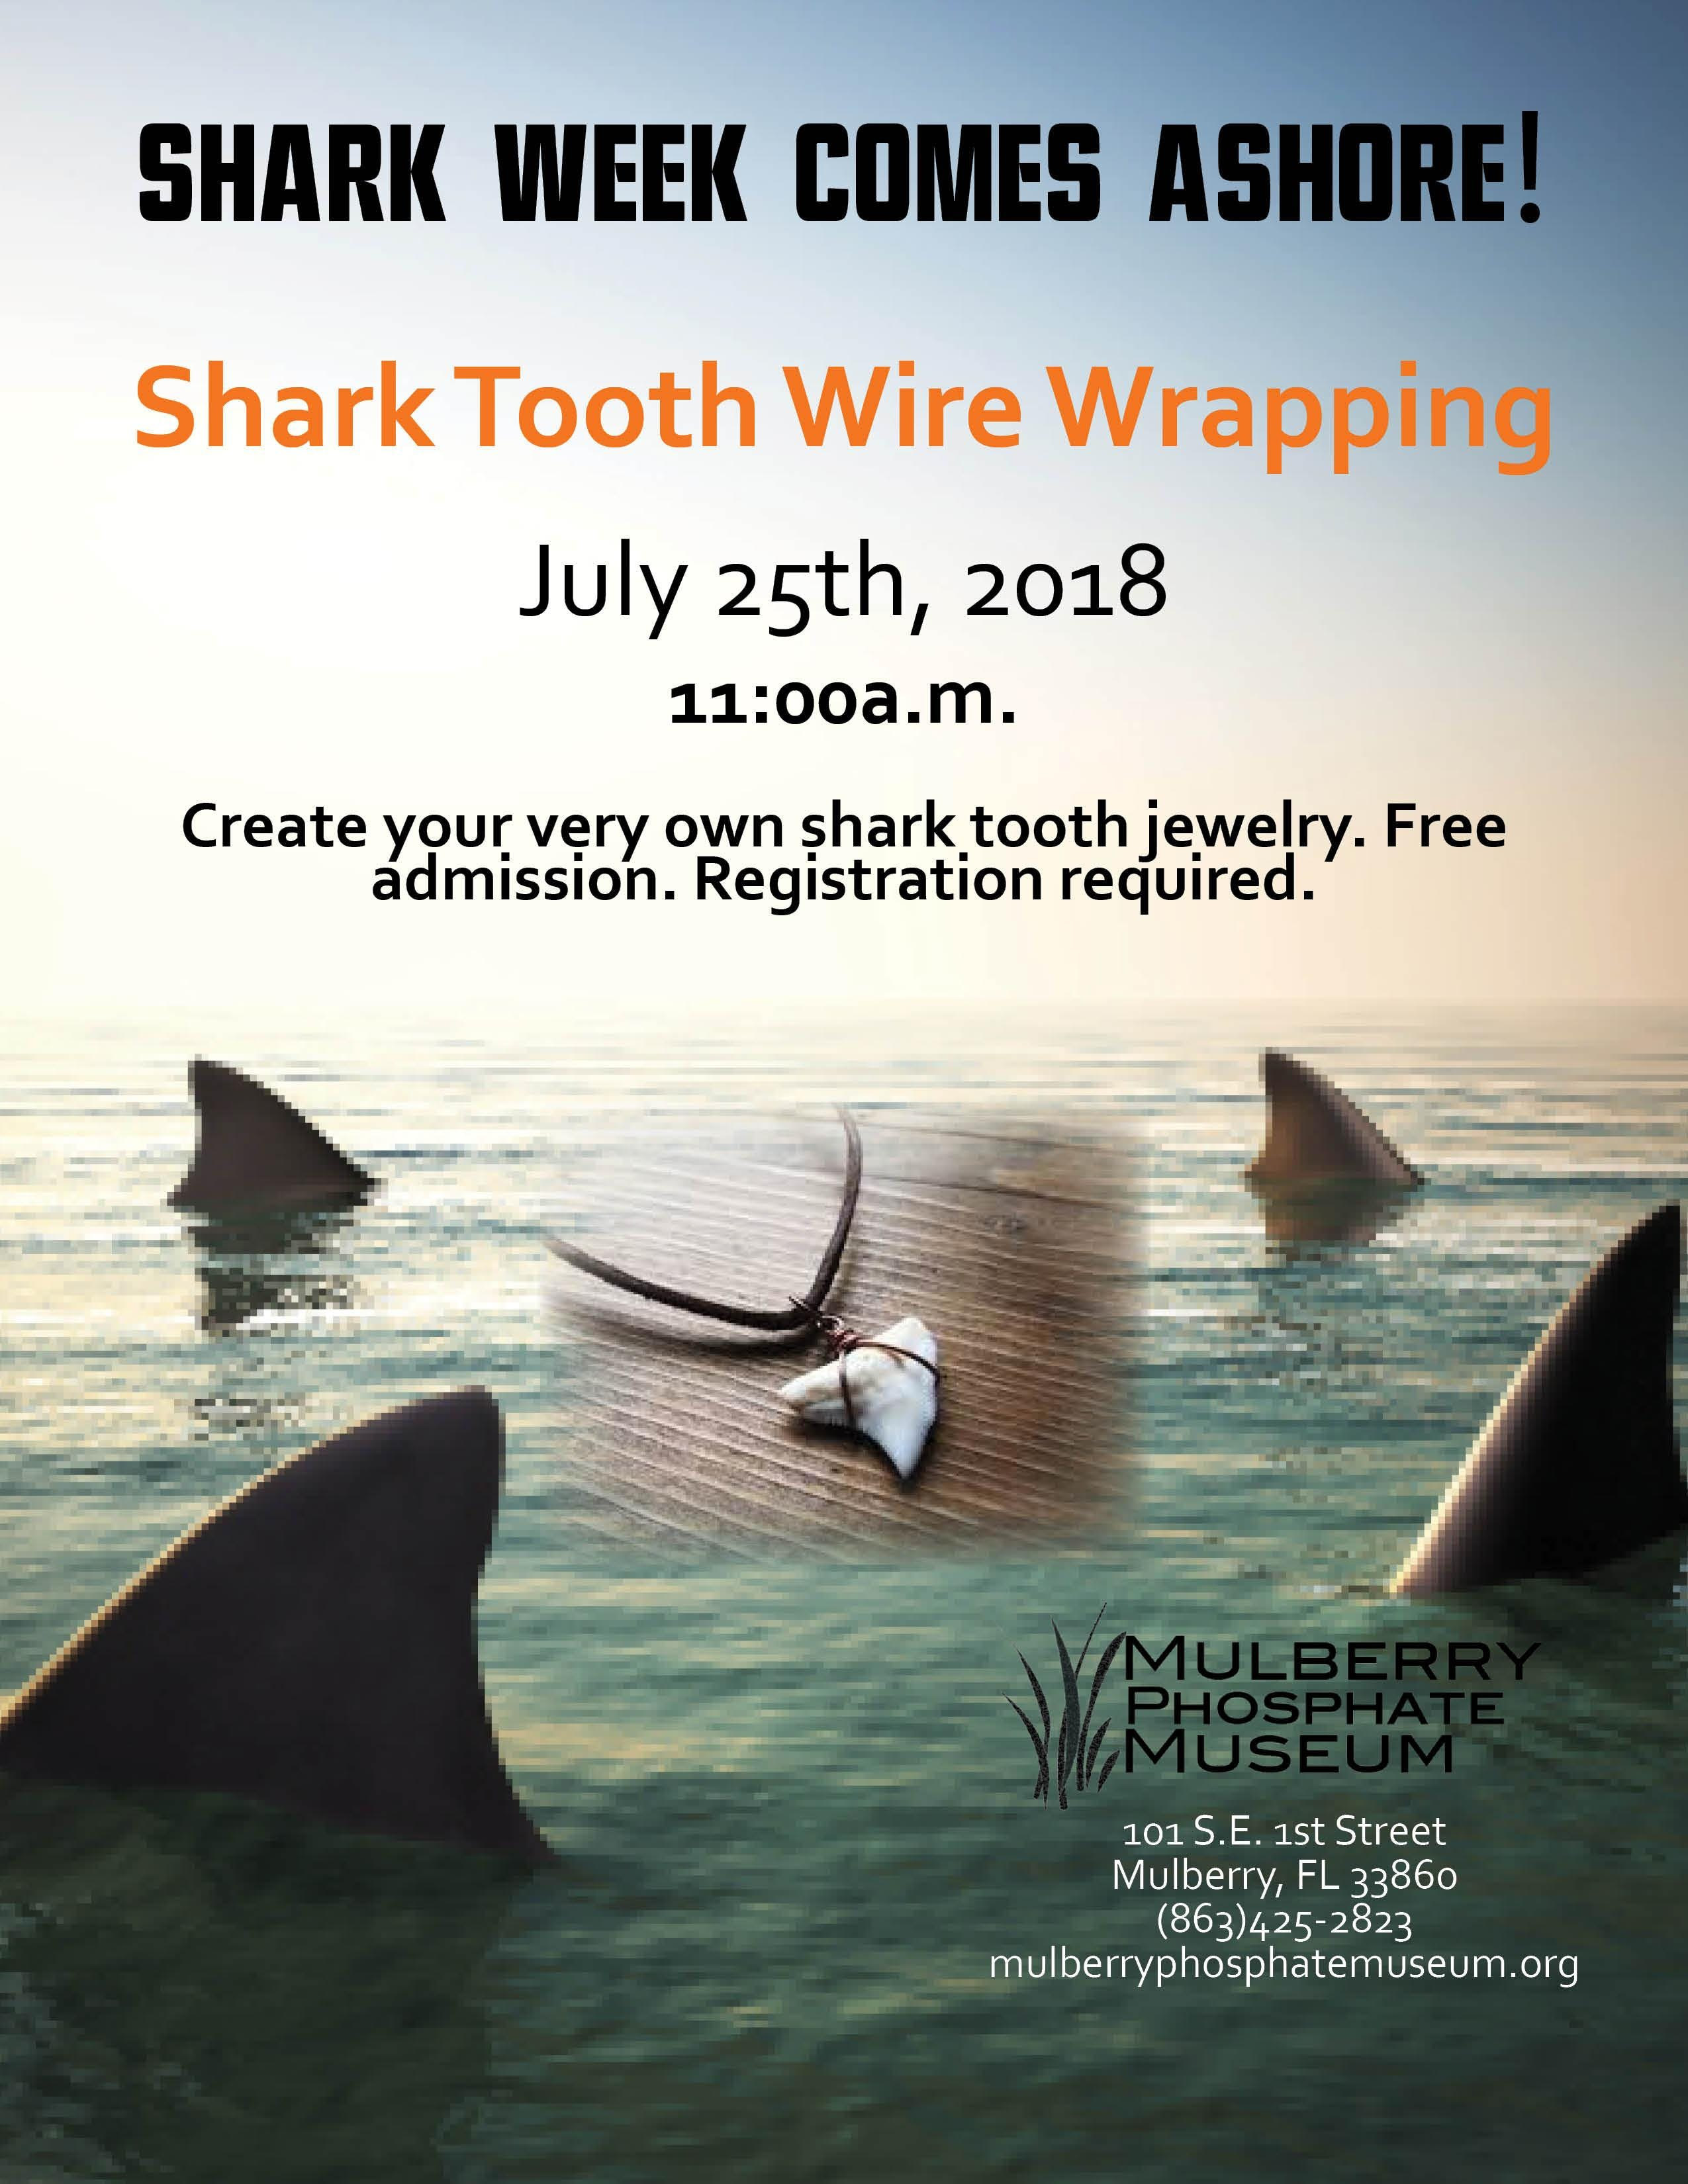 Shark Tooth Wire Wrapping at Phosphate Museum, Mulberry